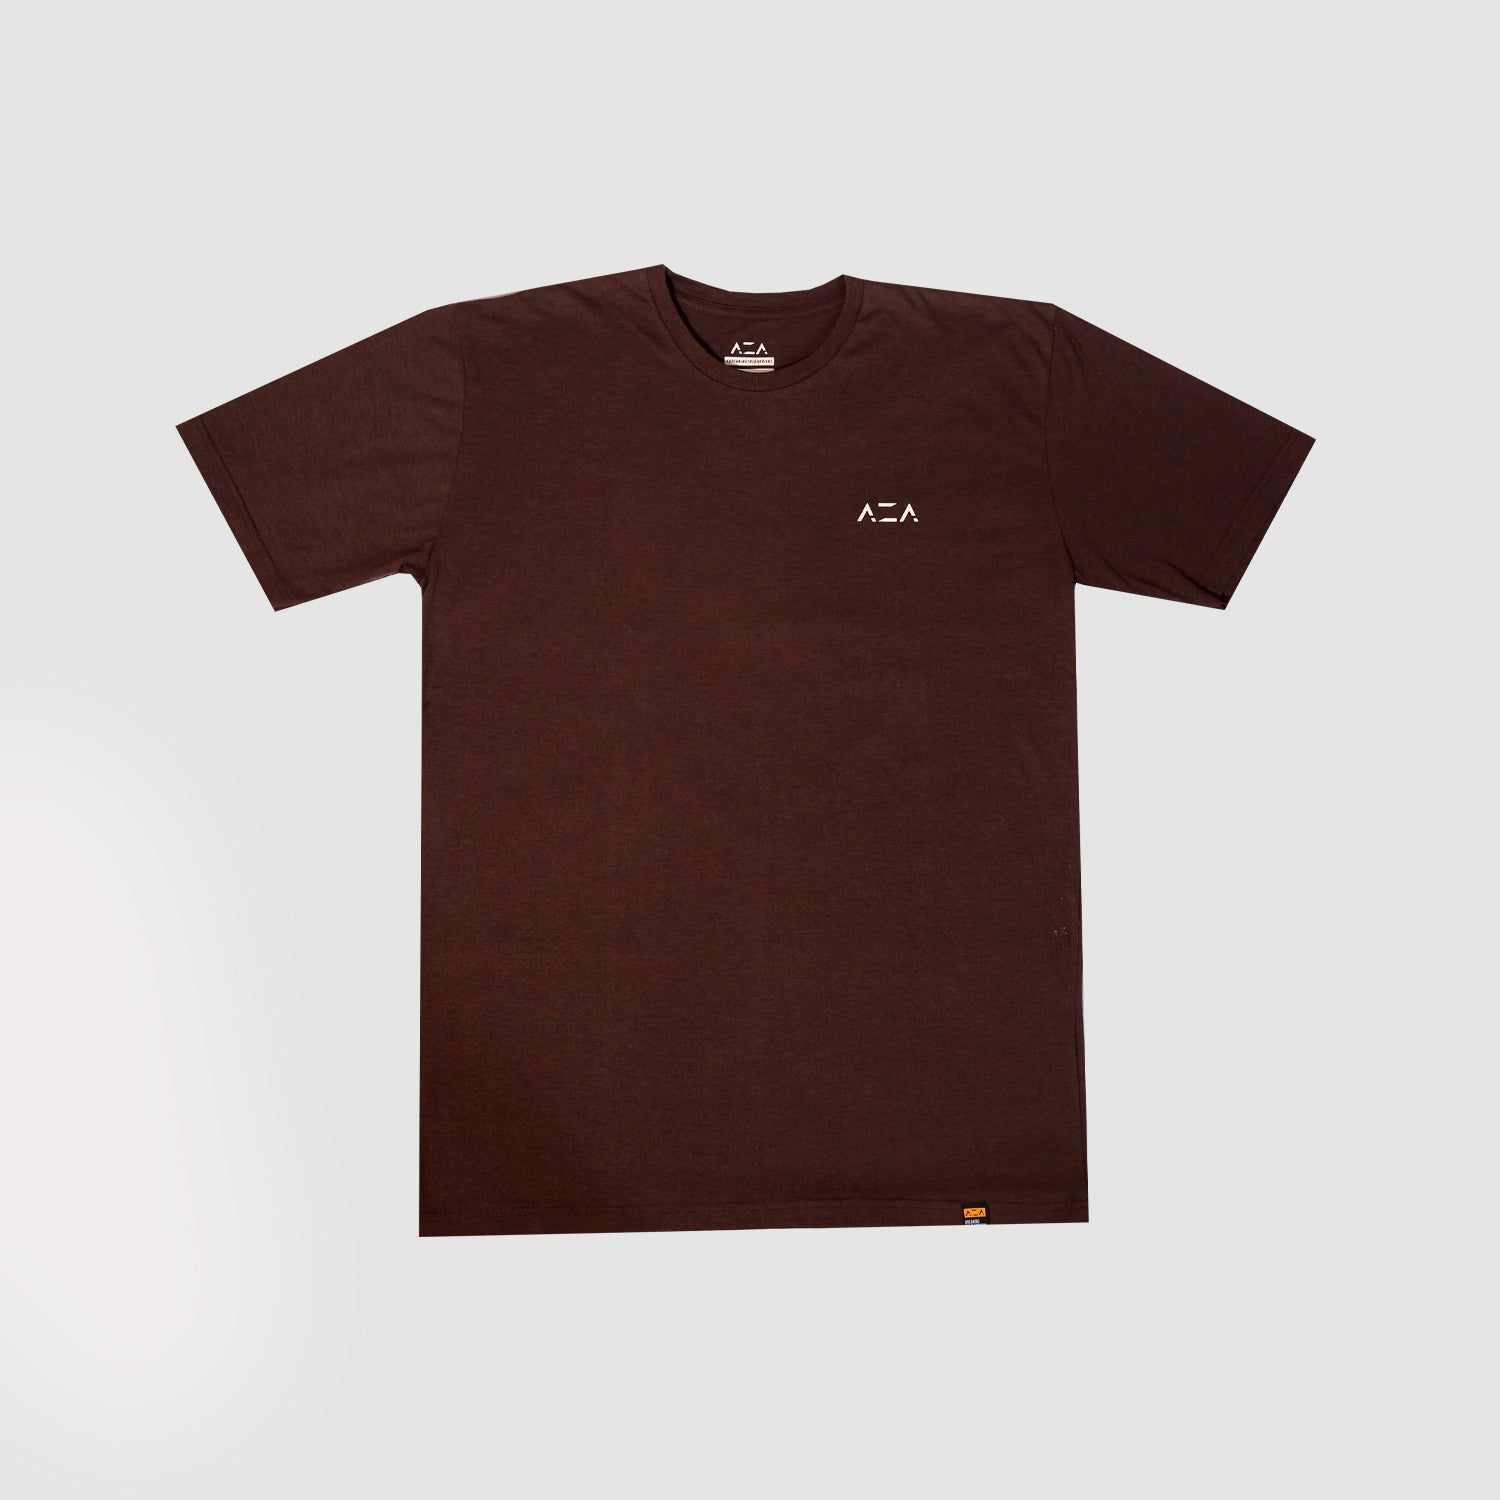 AZA Basic T-Shirt - Brown